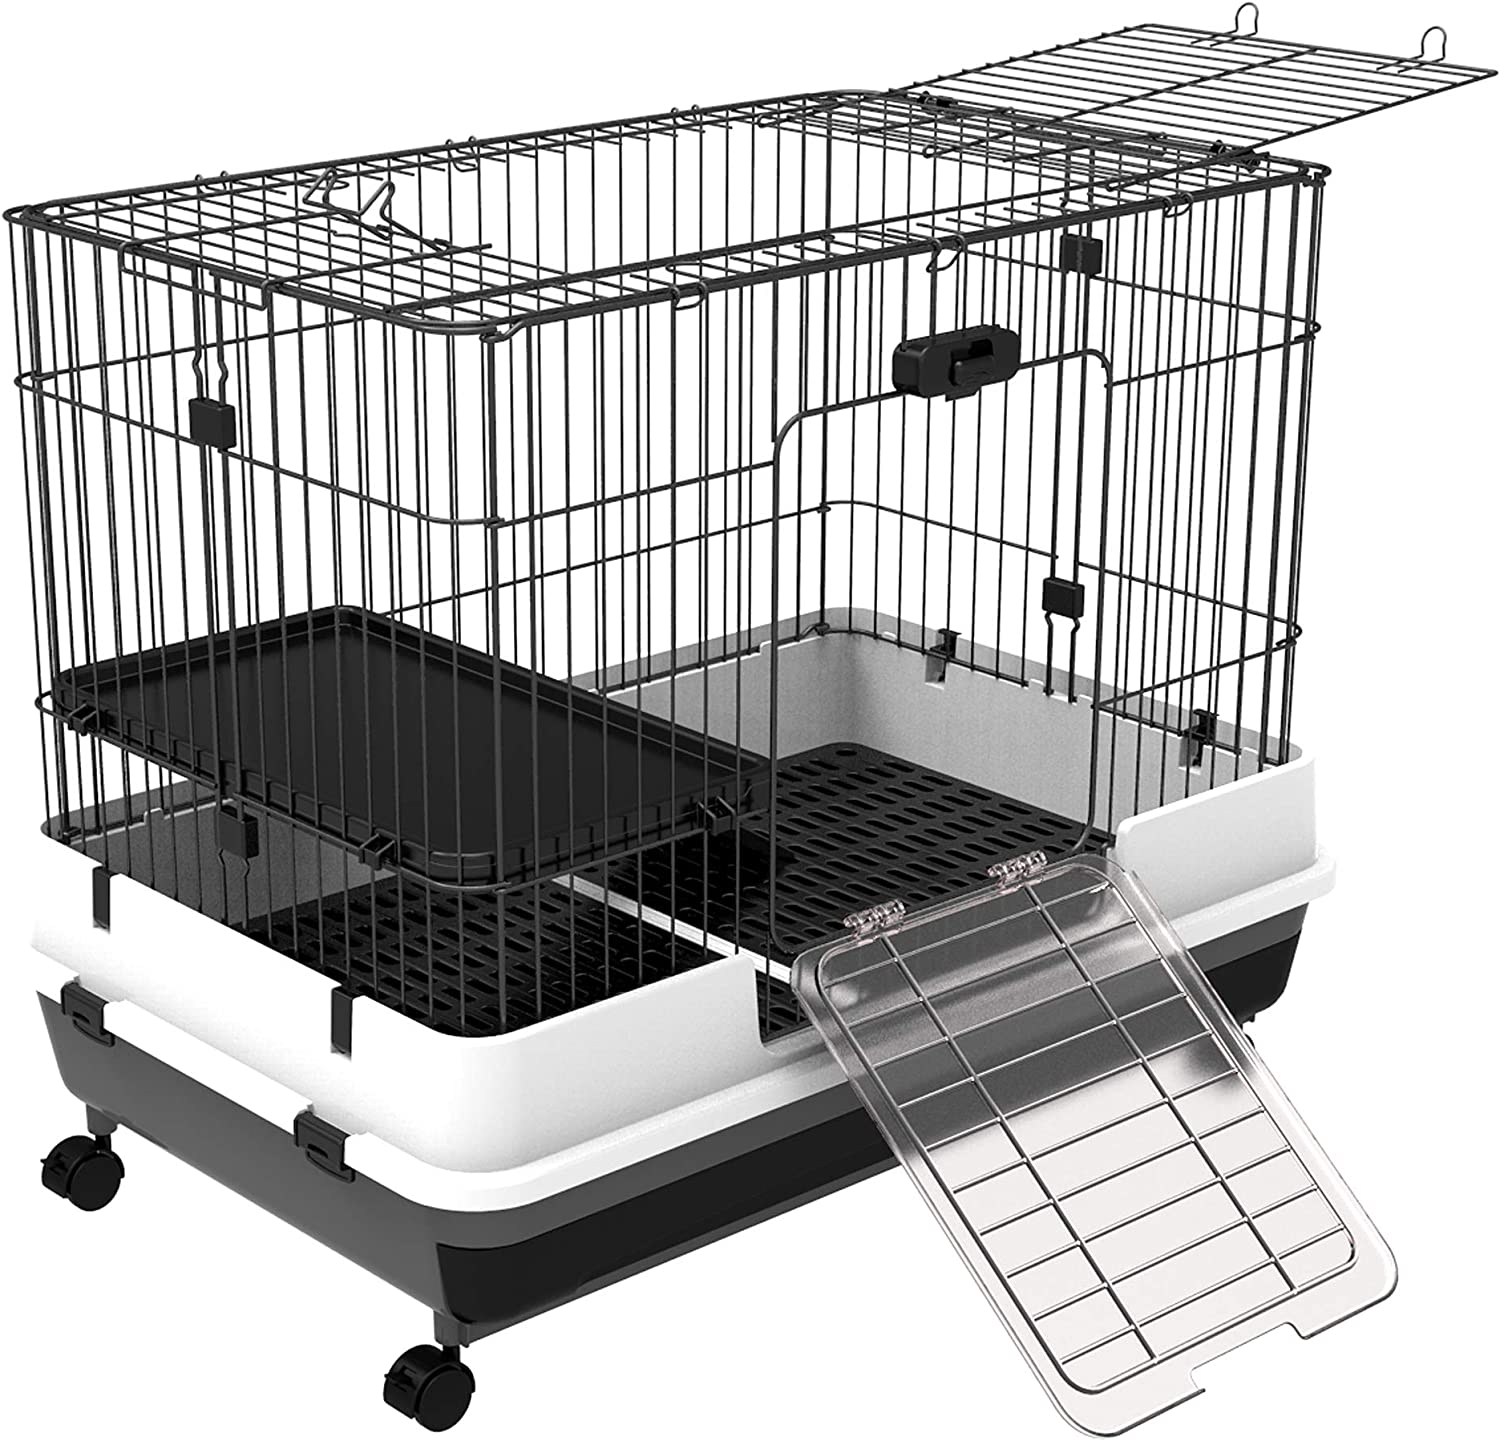 "PawHut 32""L 2-Level Indoor Small Animal Rabbit Cage with Wheels - Black"